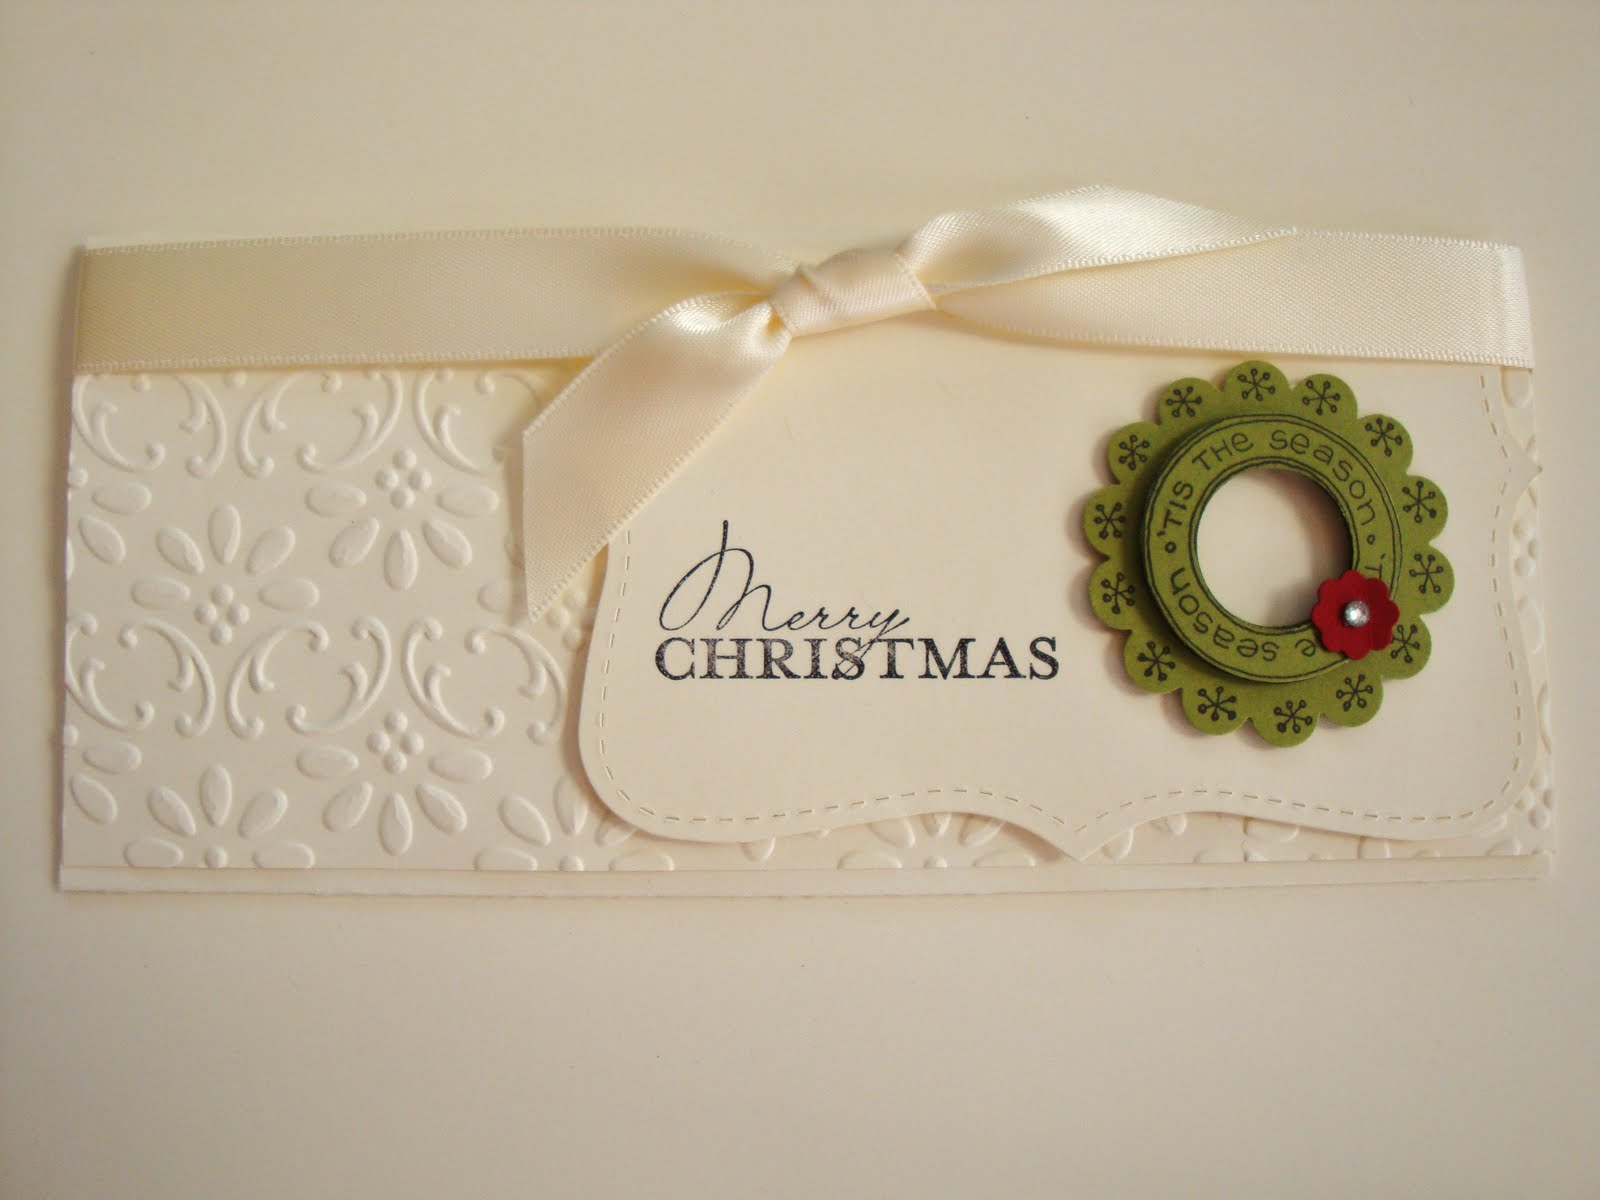 Gorgeous gift card/money holder   Cards from SU Christmas ...